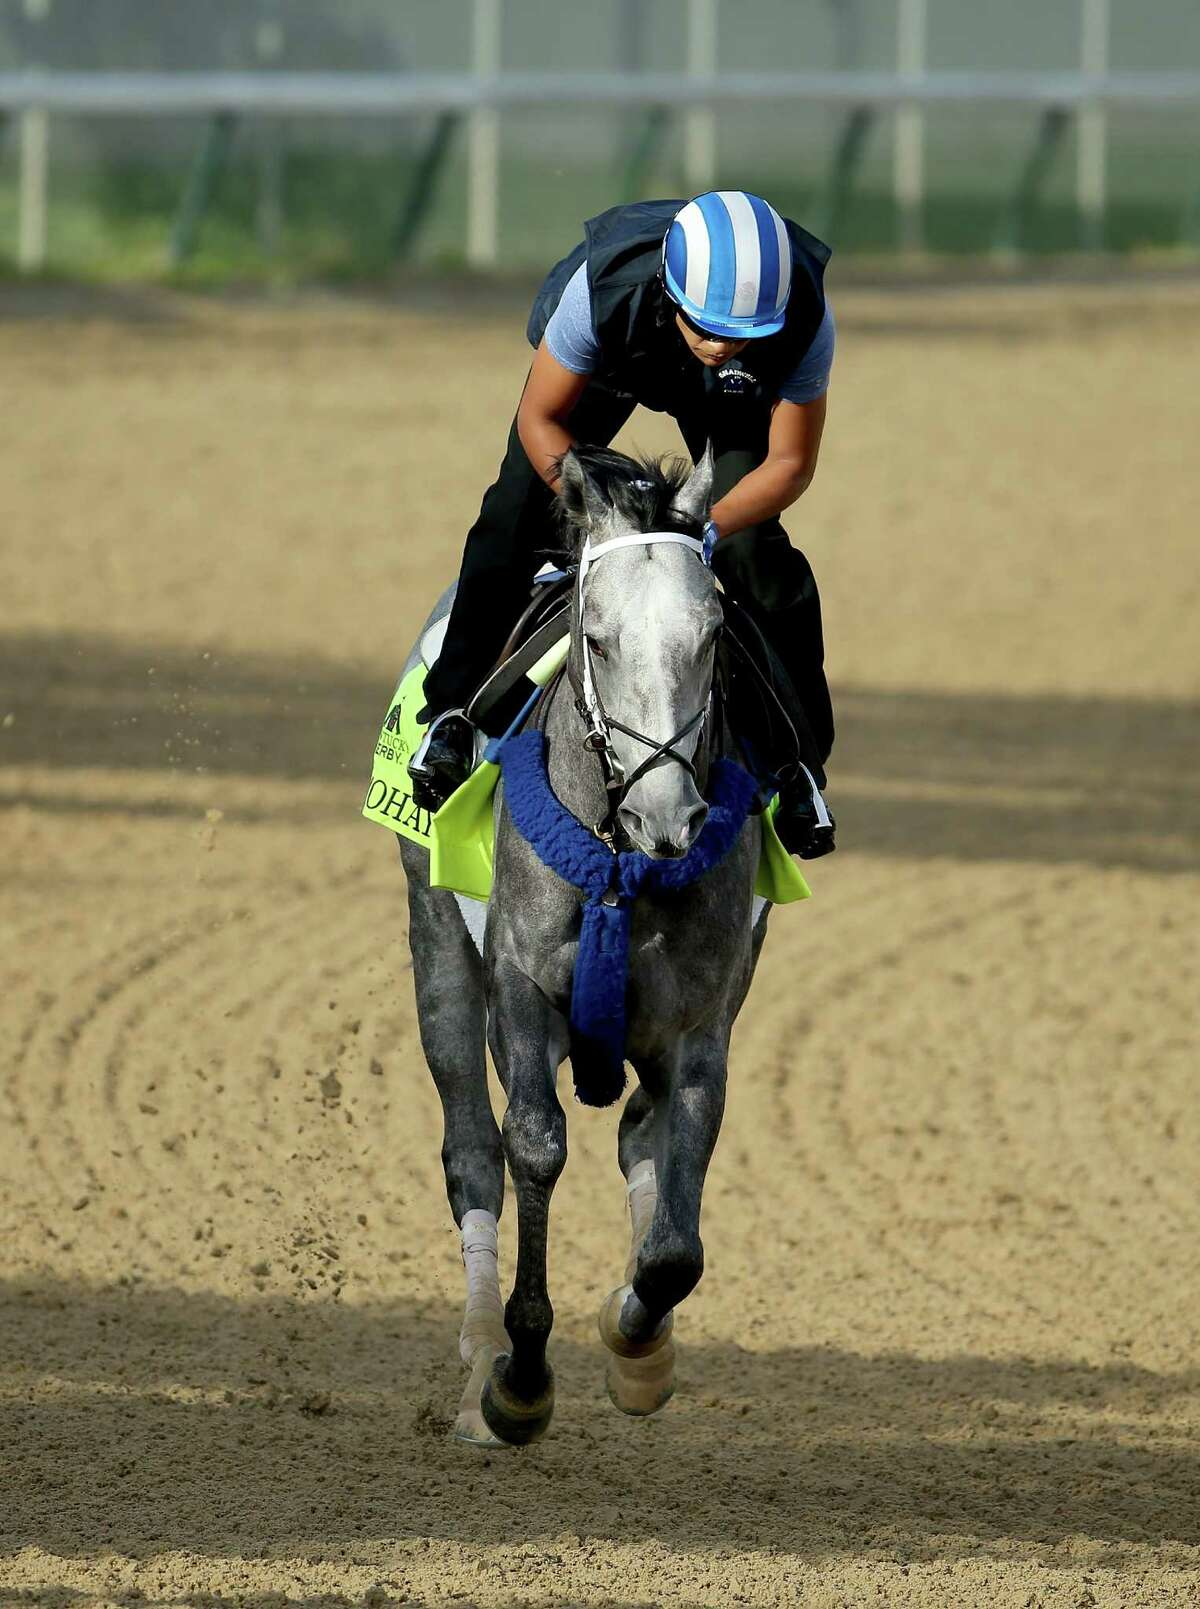 LOUISVILLE, KY - MAY 02: Mohaymen runs on the track during the morning training for the 2016 Kentucky Derby at Churchill Downs on May 02, 2016 in Louisville, Kentucky. (Photo by Andy Lyons/Getty Images) ORG XMIT: 618622905